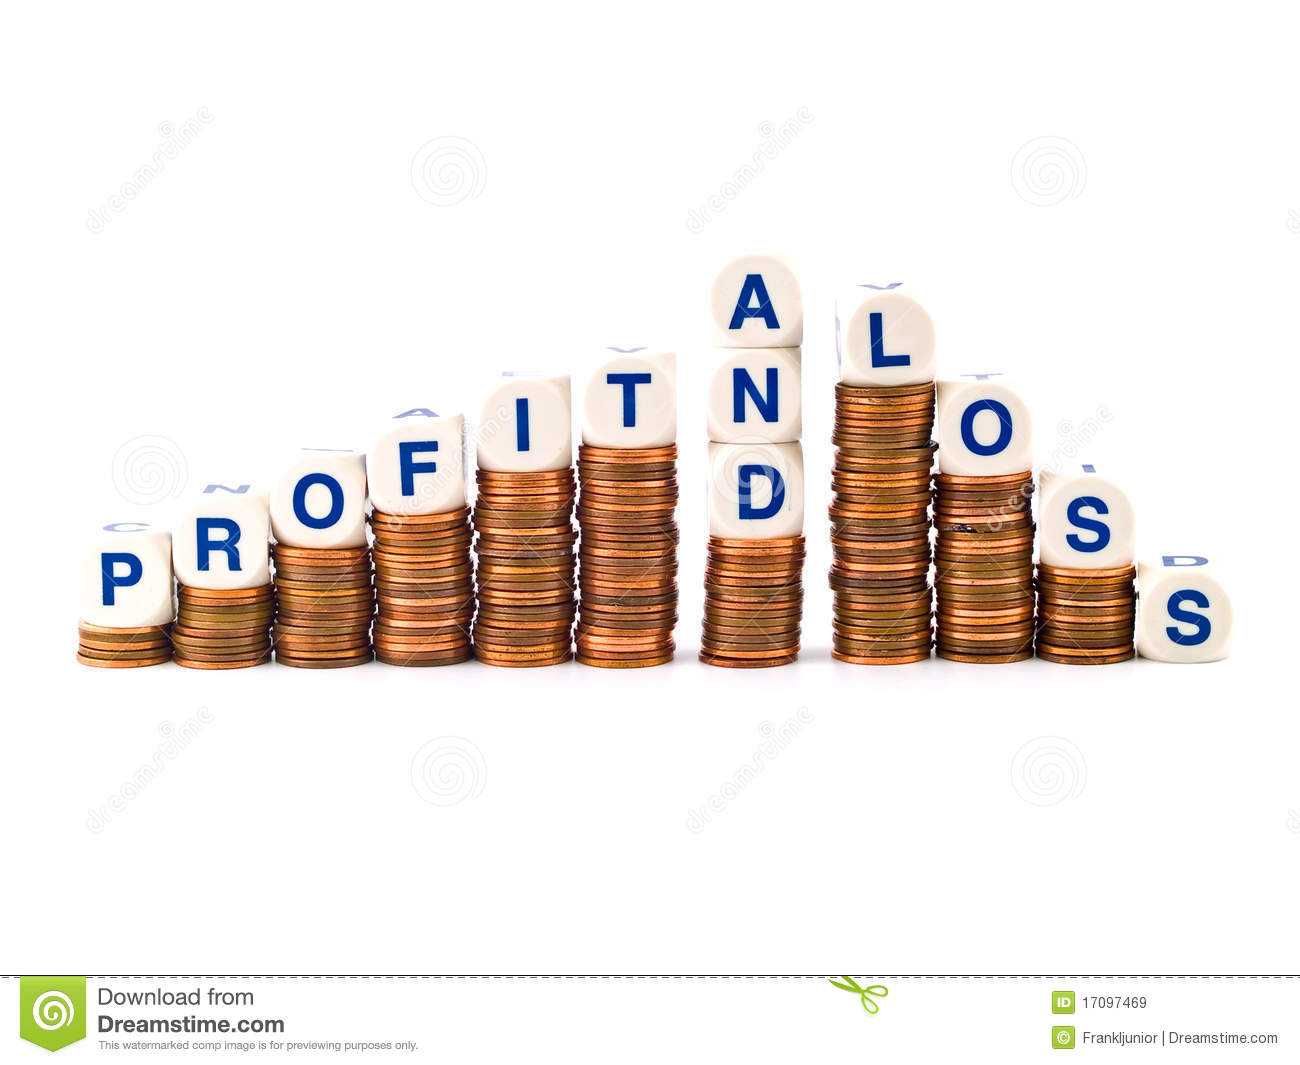 Royalty Free Stock Images Dice Spelling Profit Loss Pennies Image17097469 on dice diagram